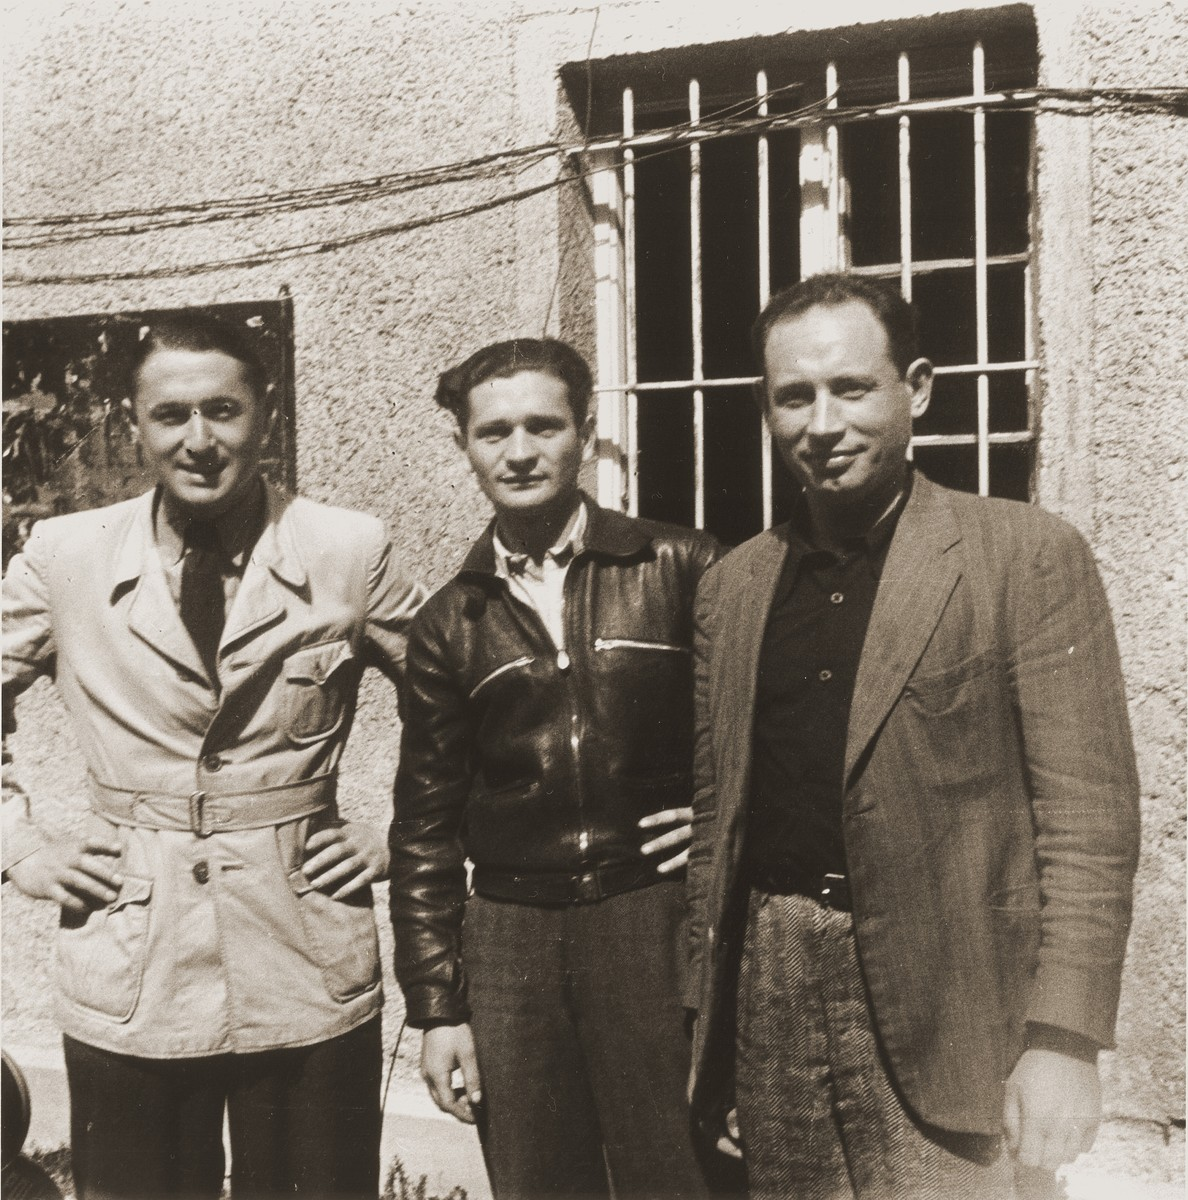 Three Jewish DPs, who survived both the Kovno ghetto and Dachau concentration camp, pose together at the Saint Ottilien Hospital displaced persons camp.    On the left is Max Lurie.